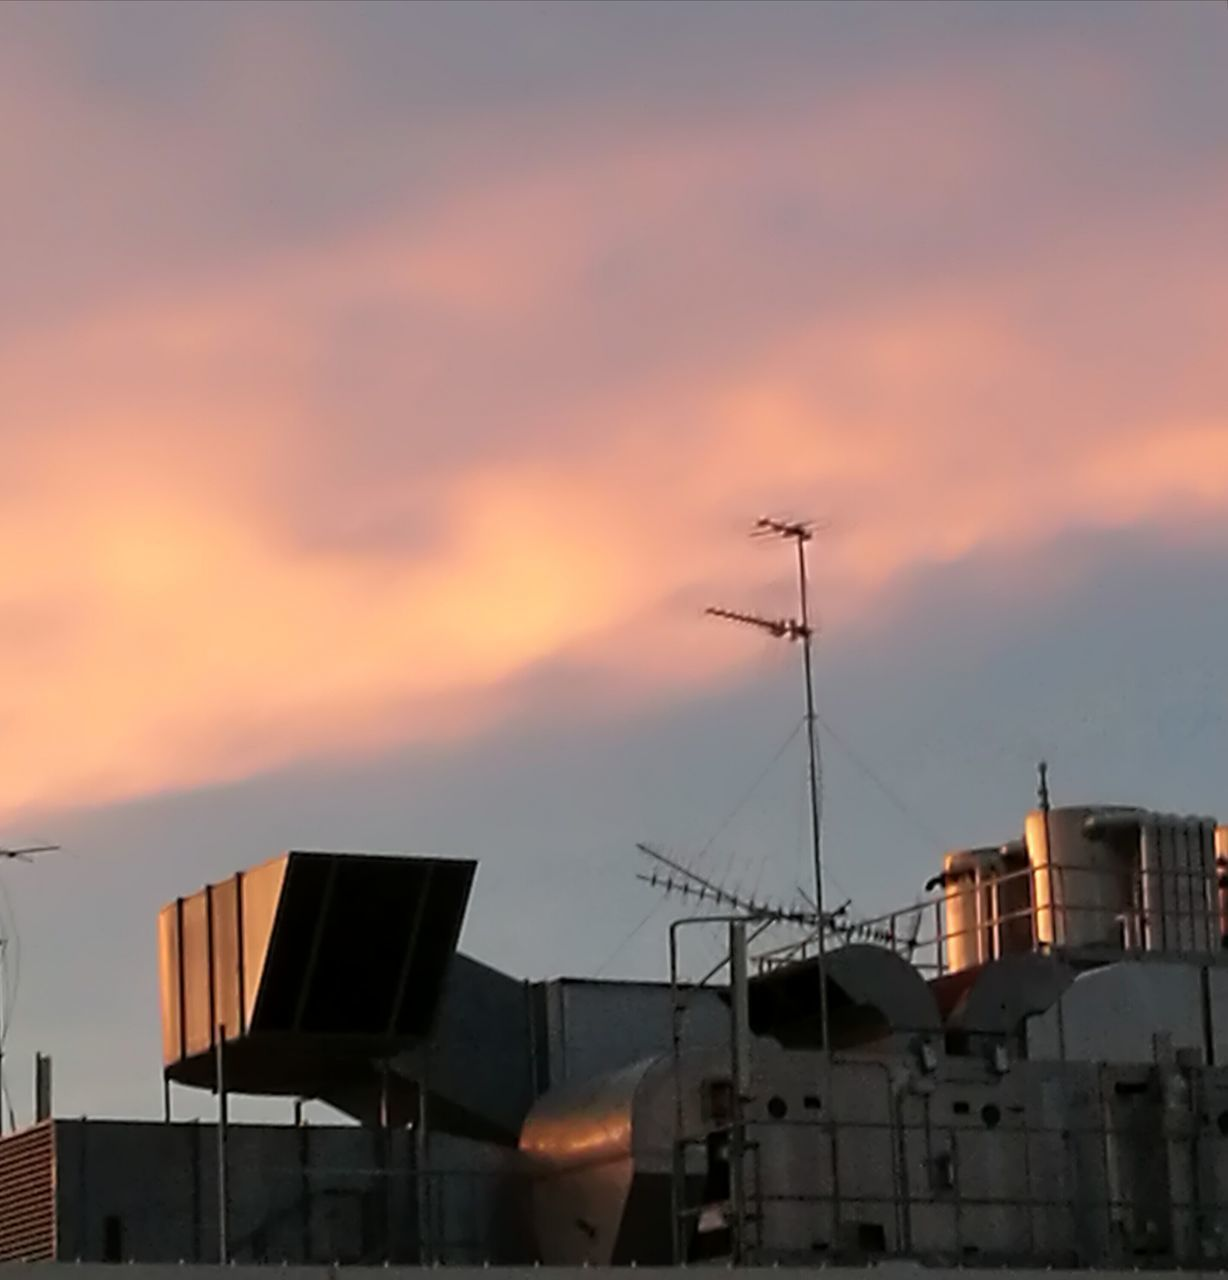 sunset, architecture, building exterior, sky, built structure, cloud - sky, orange color, nature, building, no people, communication, residential district, roof, antenna - aerial, outdoors, city, low angle view, television aerial, silhouette, technology, construction equipment